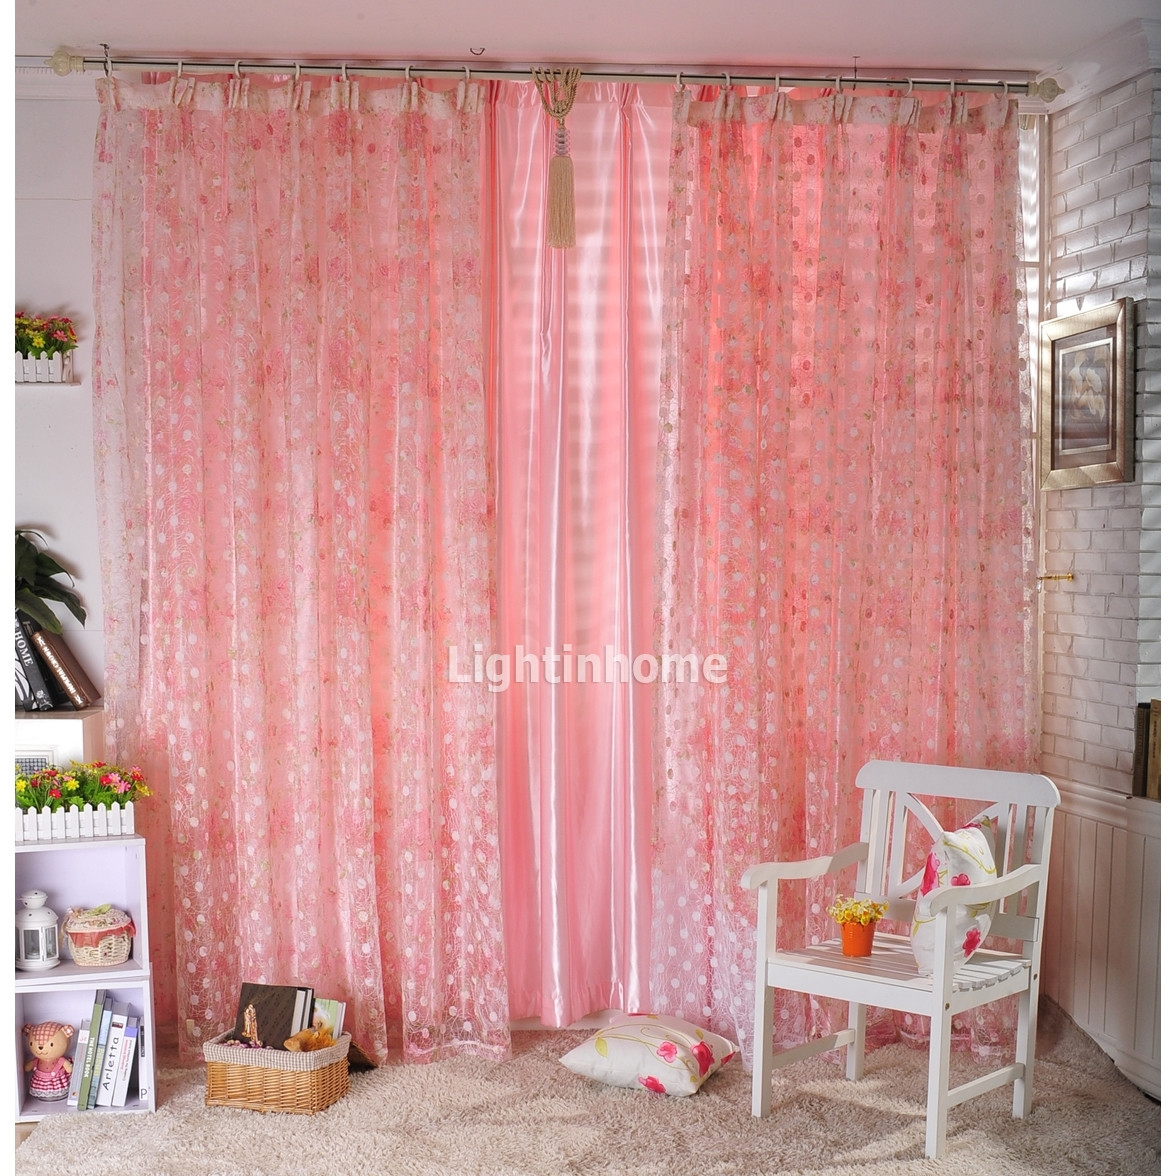 Bedroom Peach Color Bedroom 25 Cool Bedroom Ideas Beautiful With Regard To Peach Colored Curtains (Image 8 of 25)